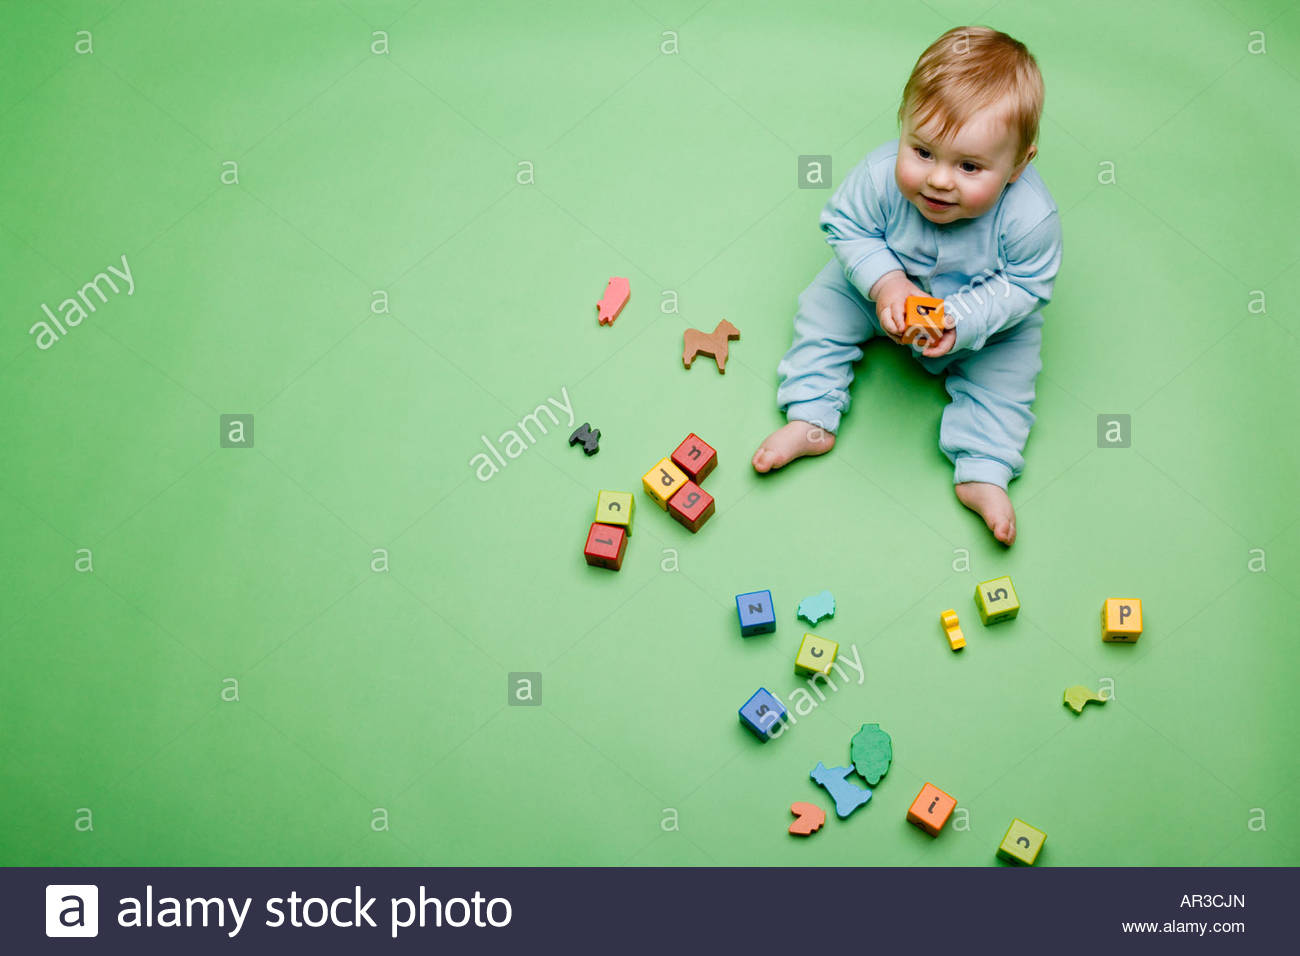 Baby boy with building blocks - Stock Image